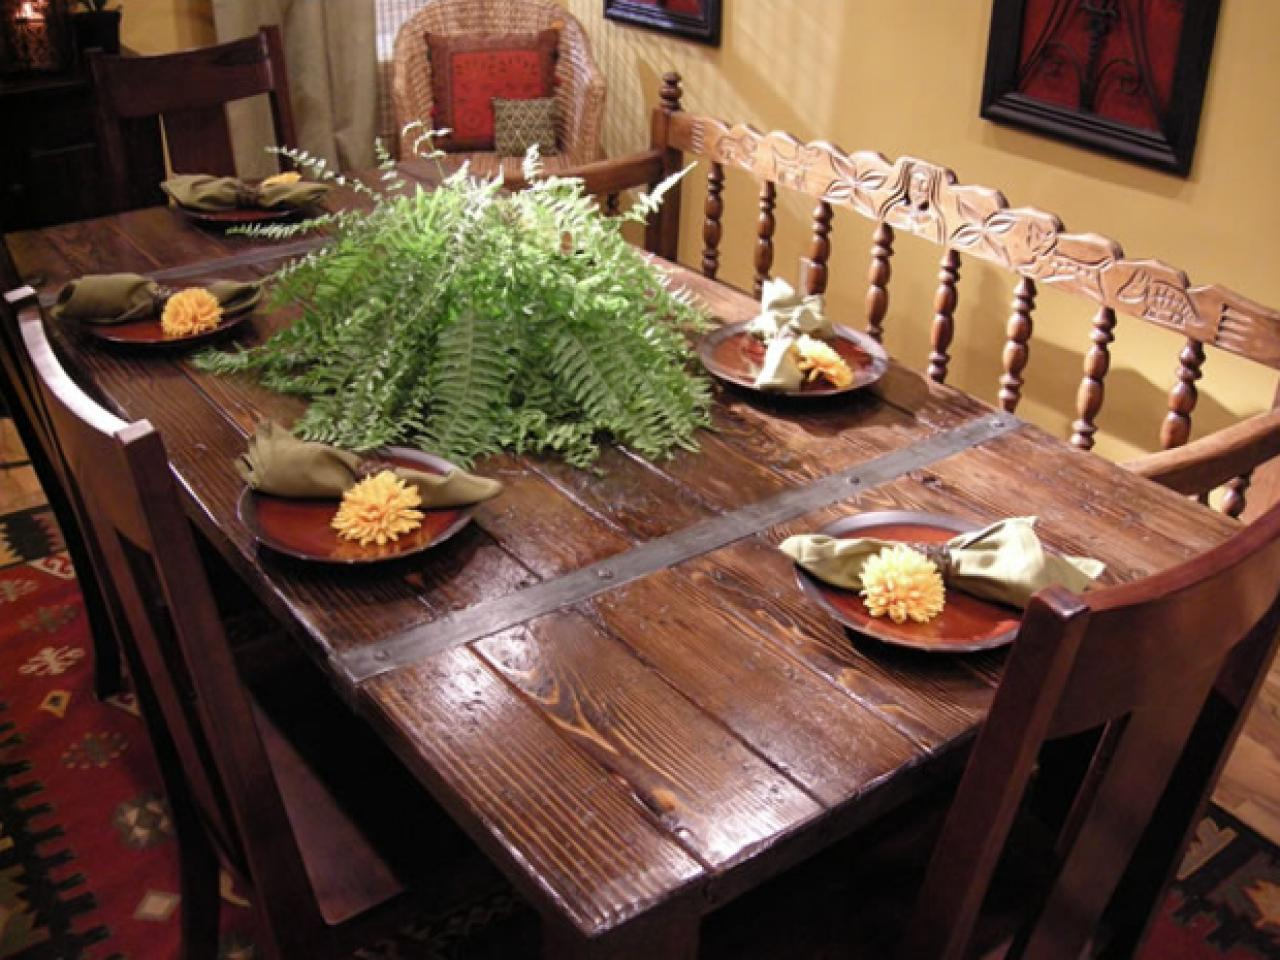 https://hgtvhome.sndimg.com/content/dam/images/hgtv/fullset/2008/1/31/0/HCCAN-205_table-after.jpg.rend.hgtvcom.1280.960.suffix/1400941699169.jpeg